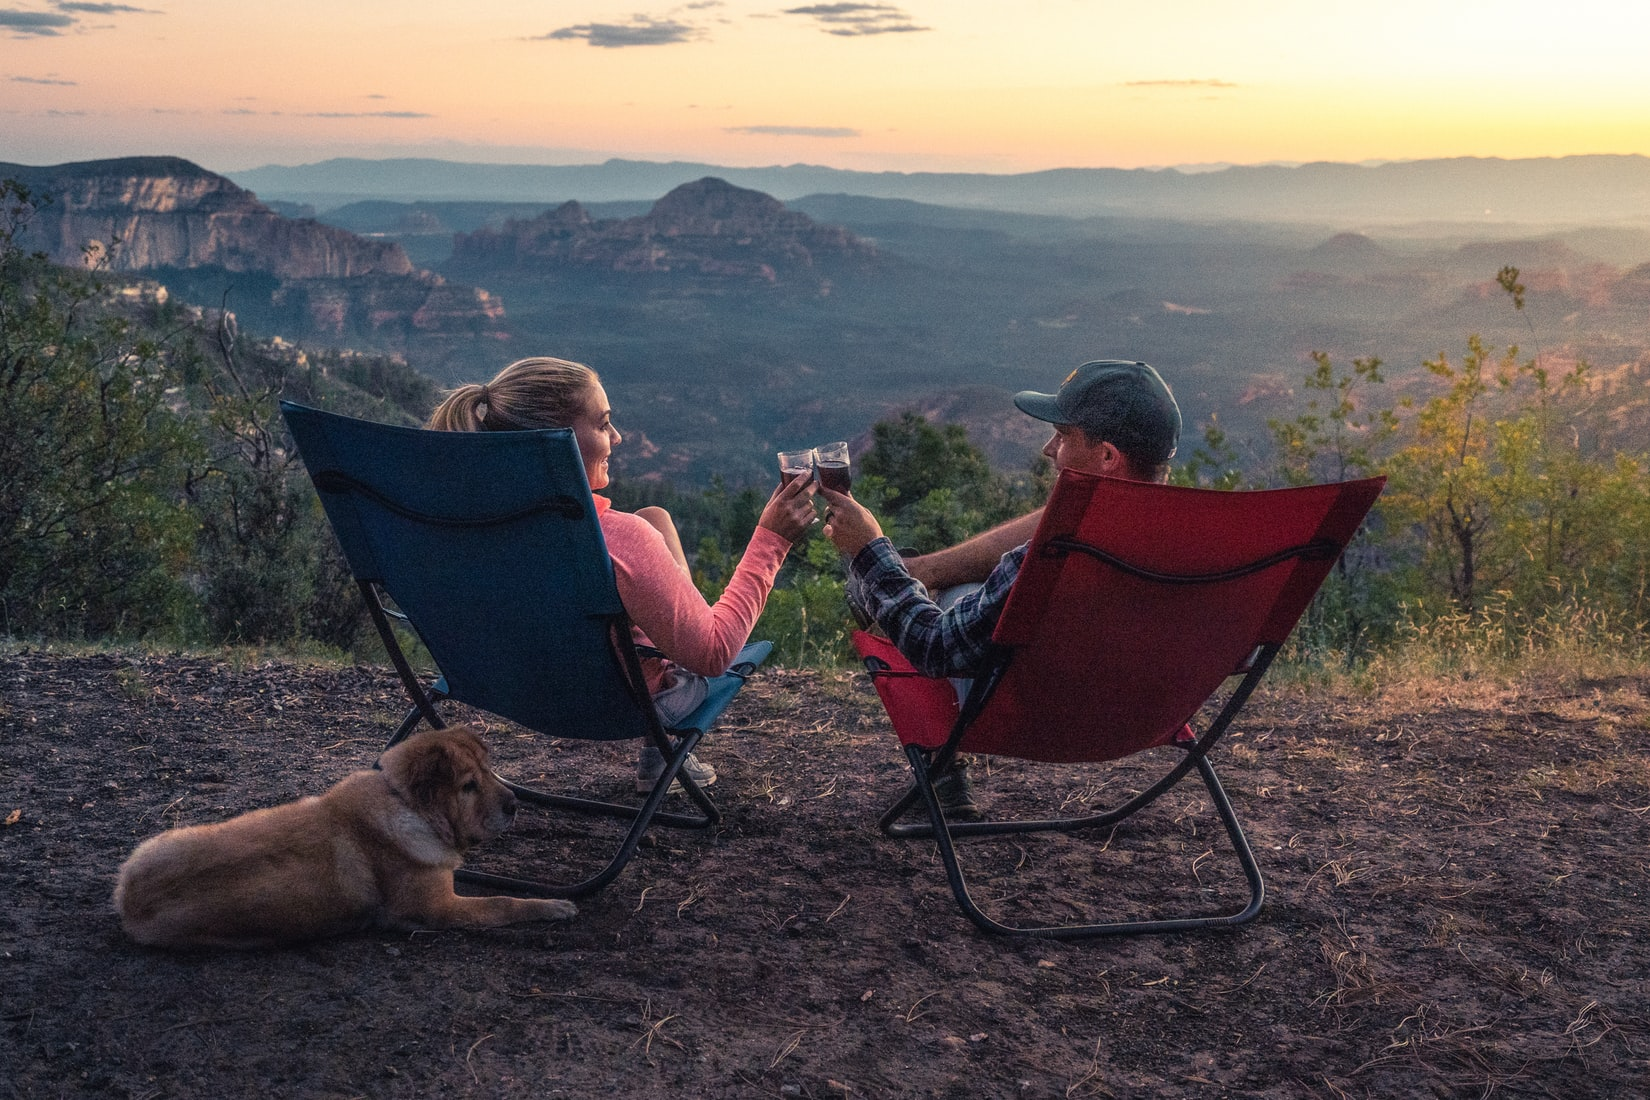 Man and woman sitting on camping chairs next to dog holding glasses in front of mountains